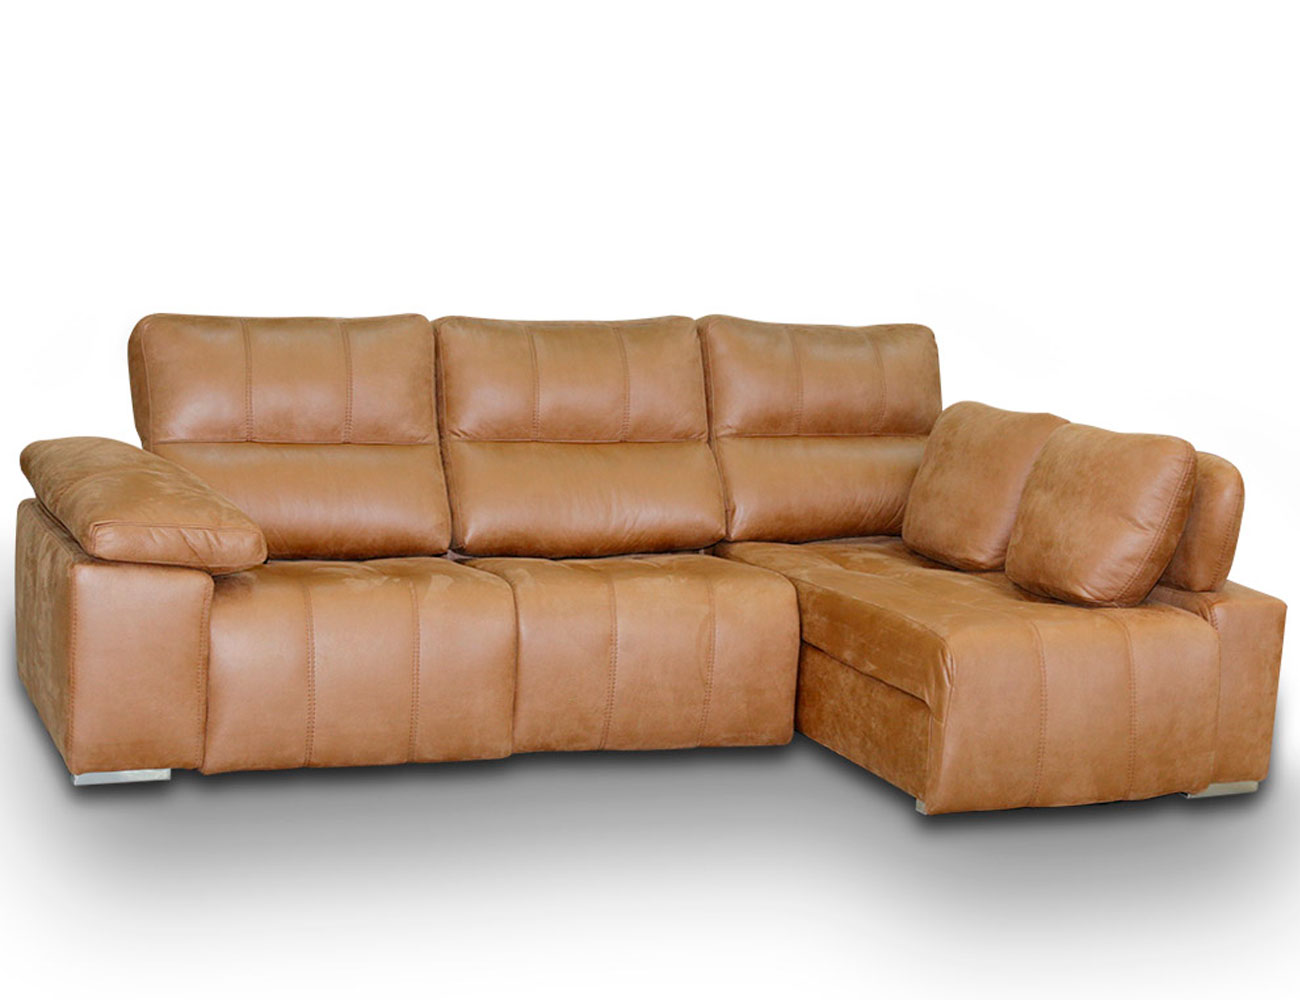 Sofa chaiselongue relax 2 motores anti manchas48